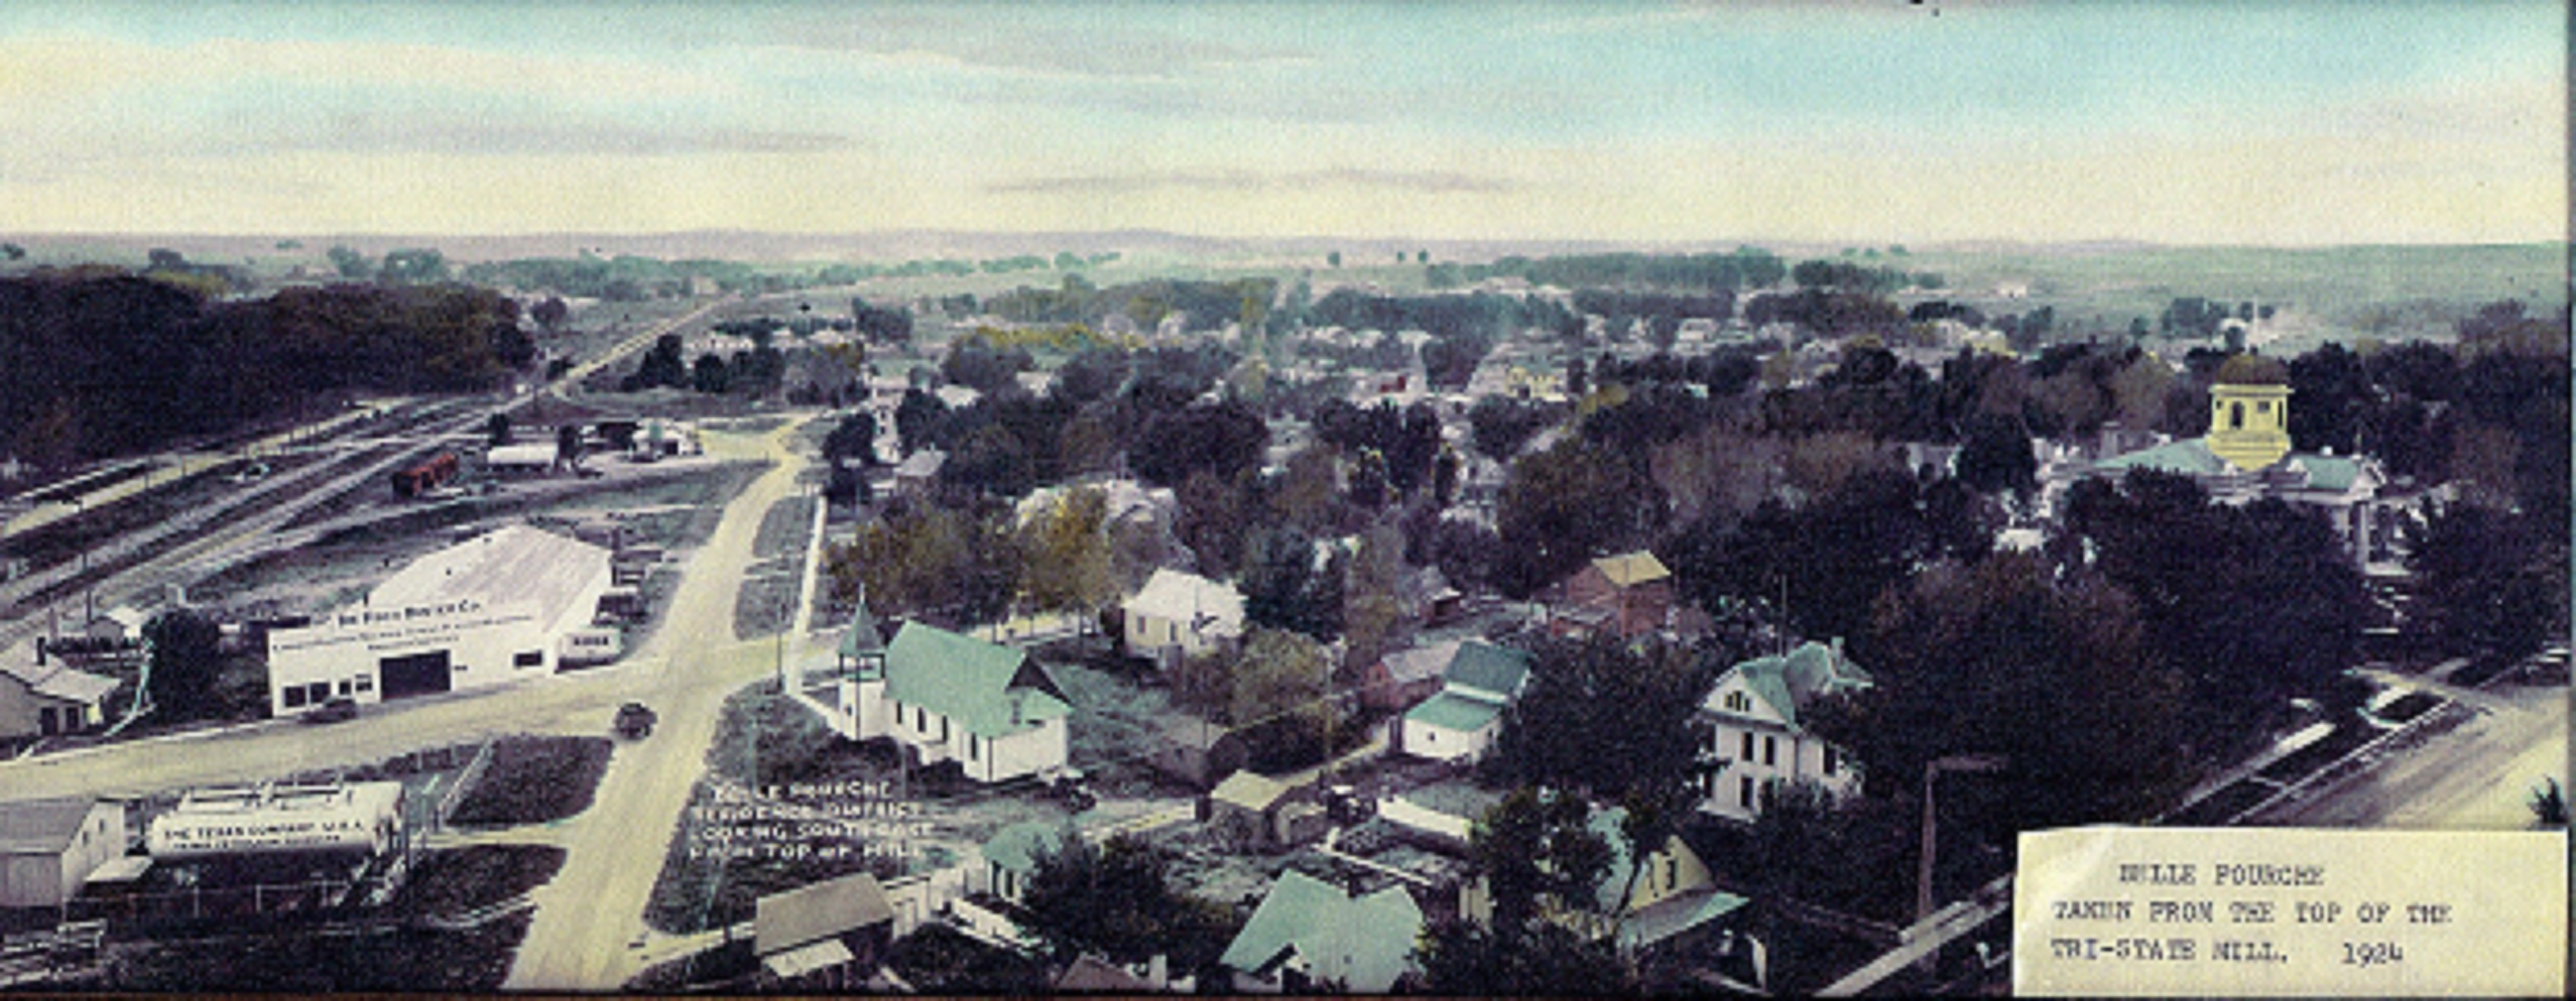 Historic Aerial View of Belle Fourche, 1924